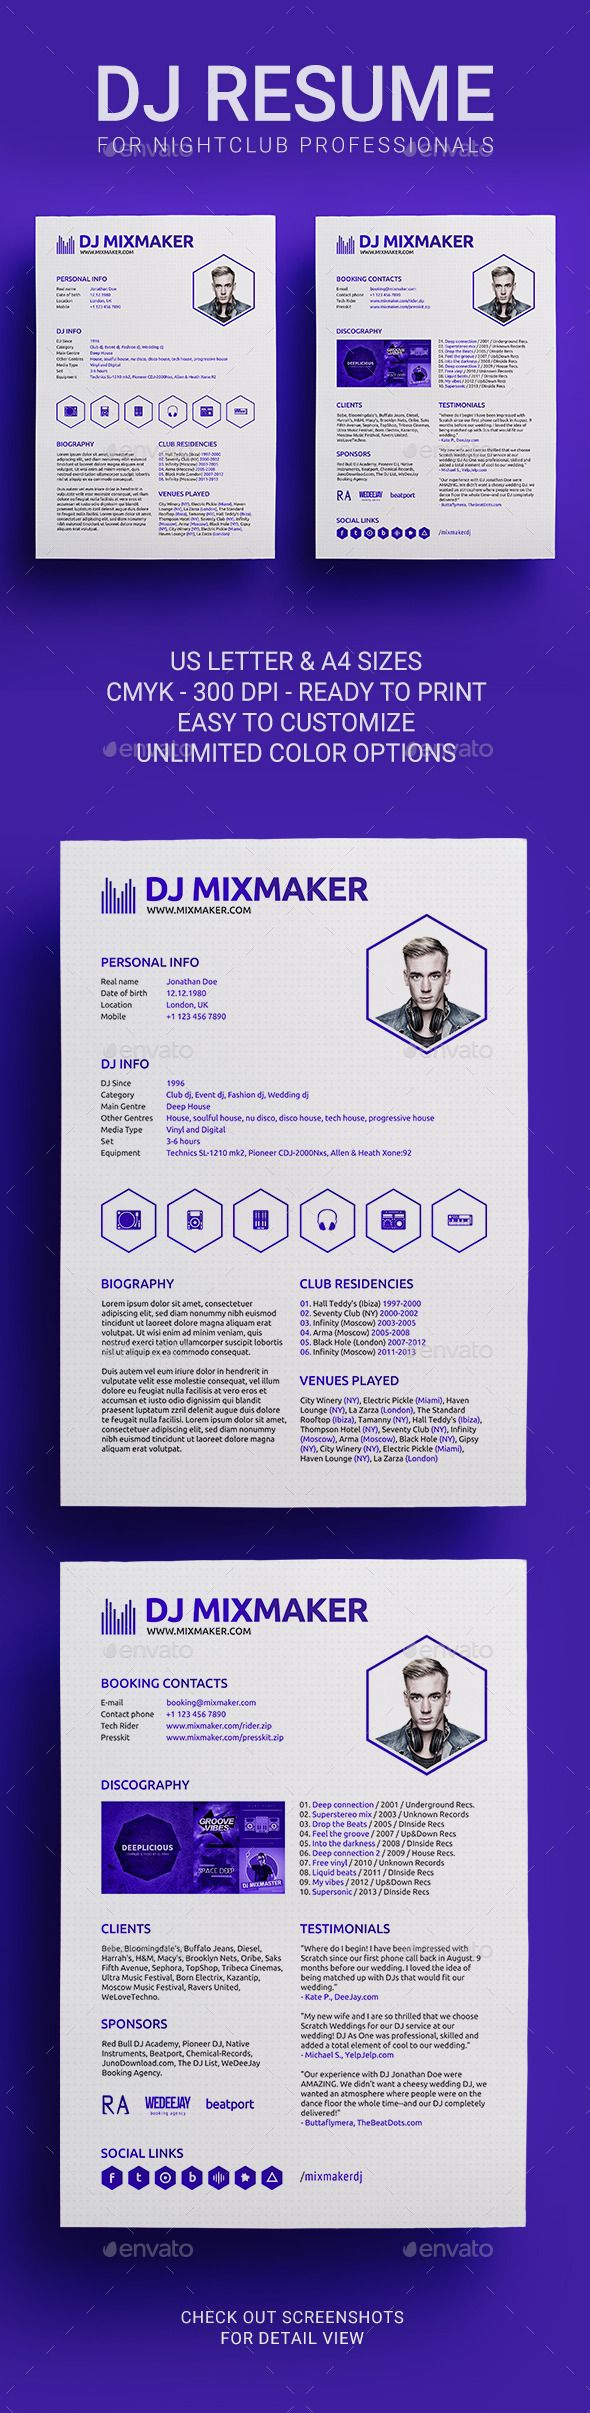 MixMaker   DJ Resume / Press Kit PSD Template  Dj Resume